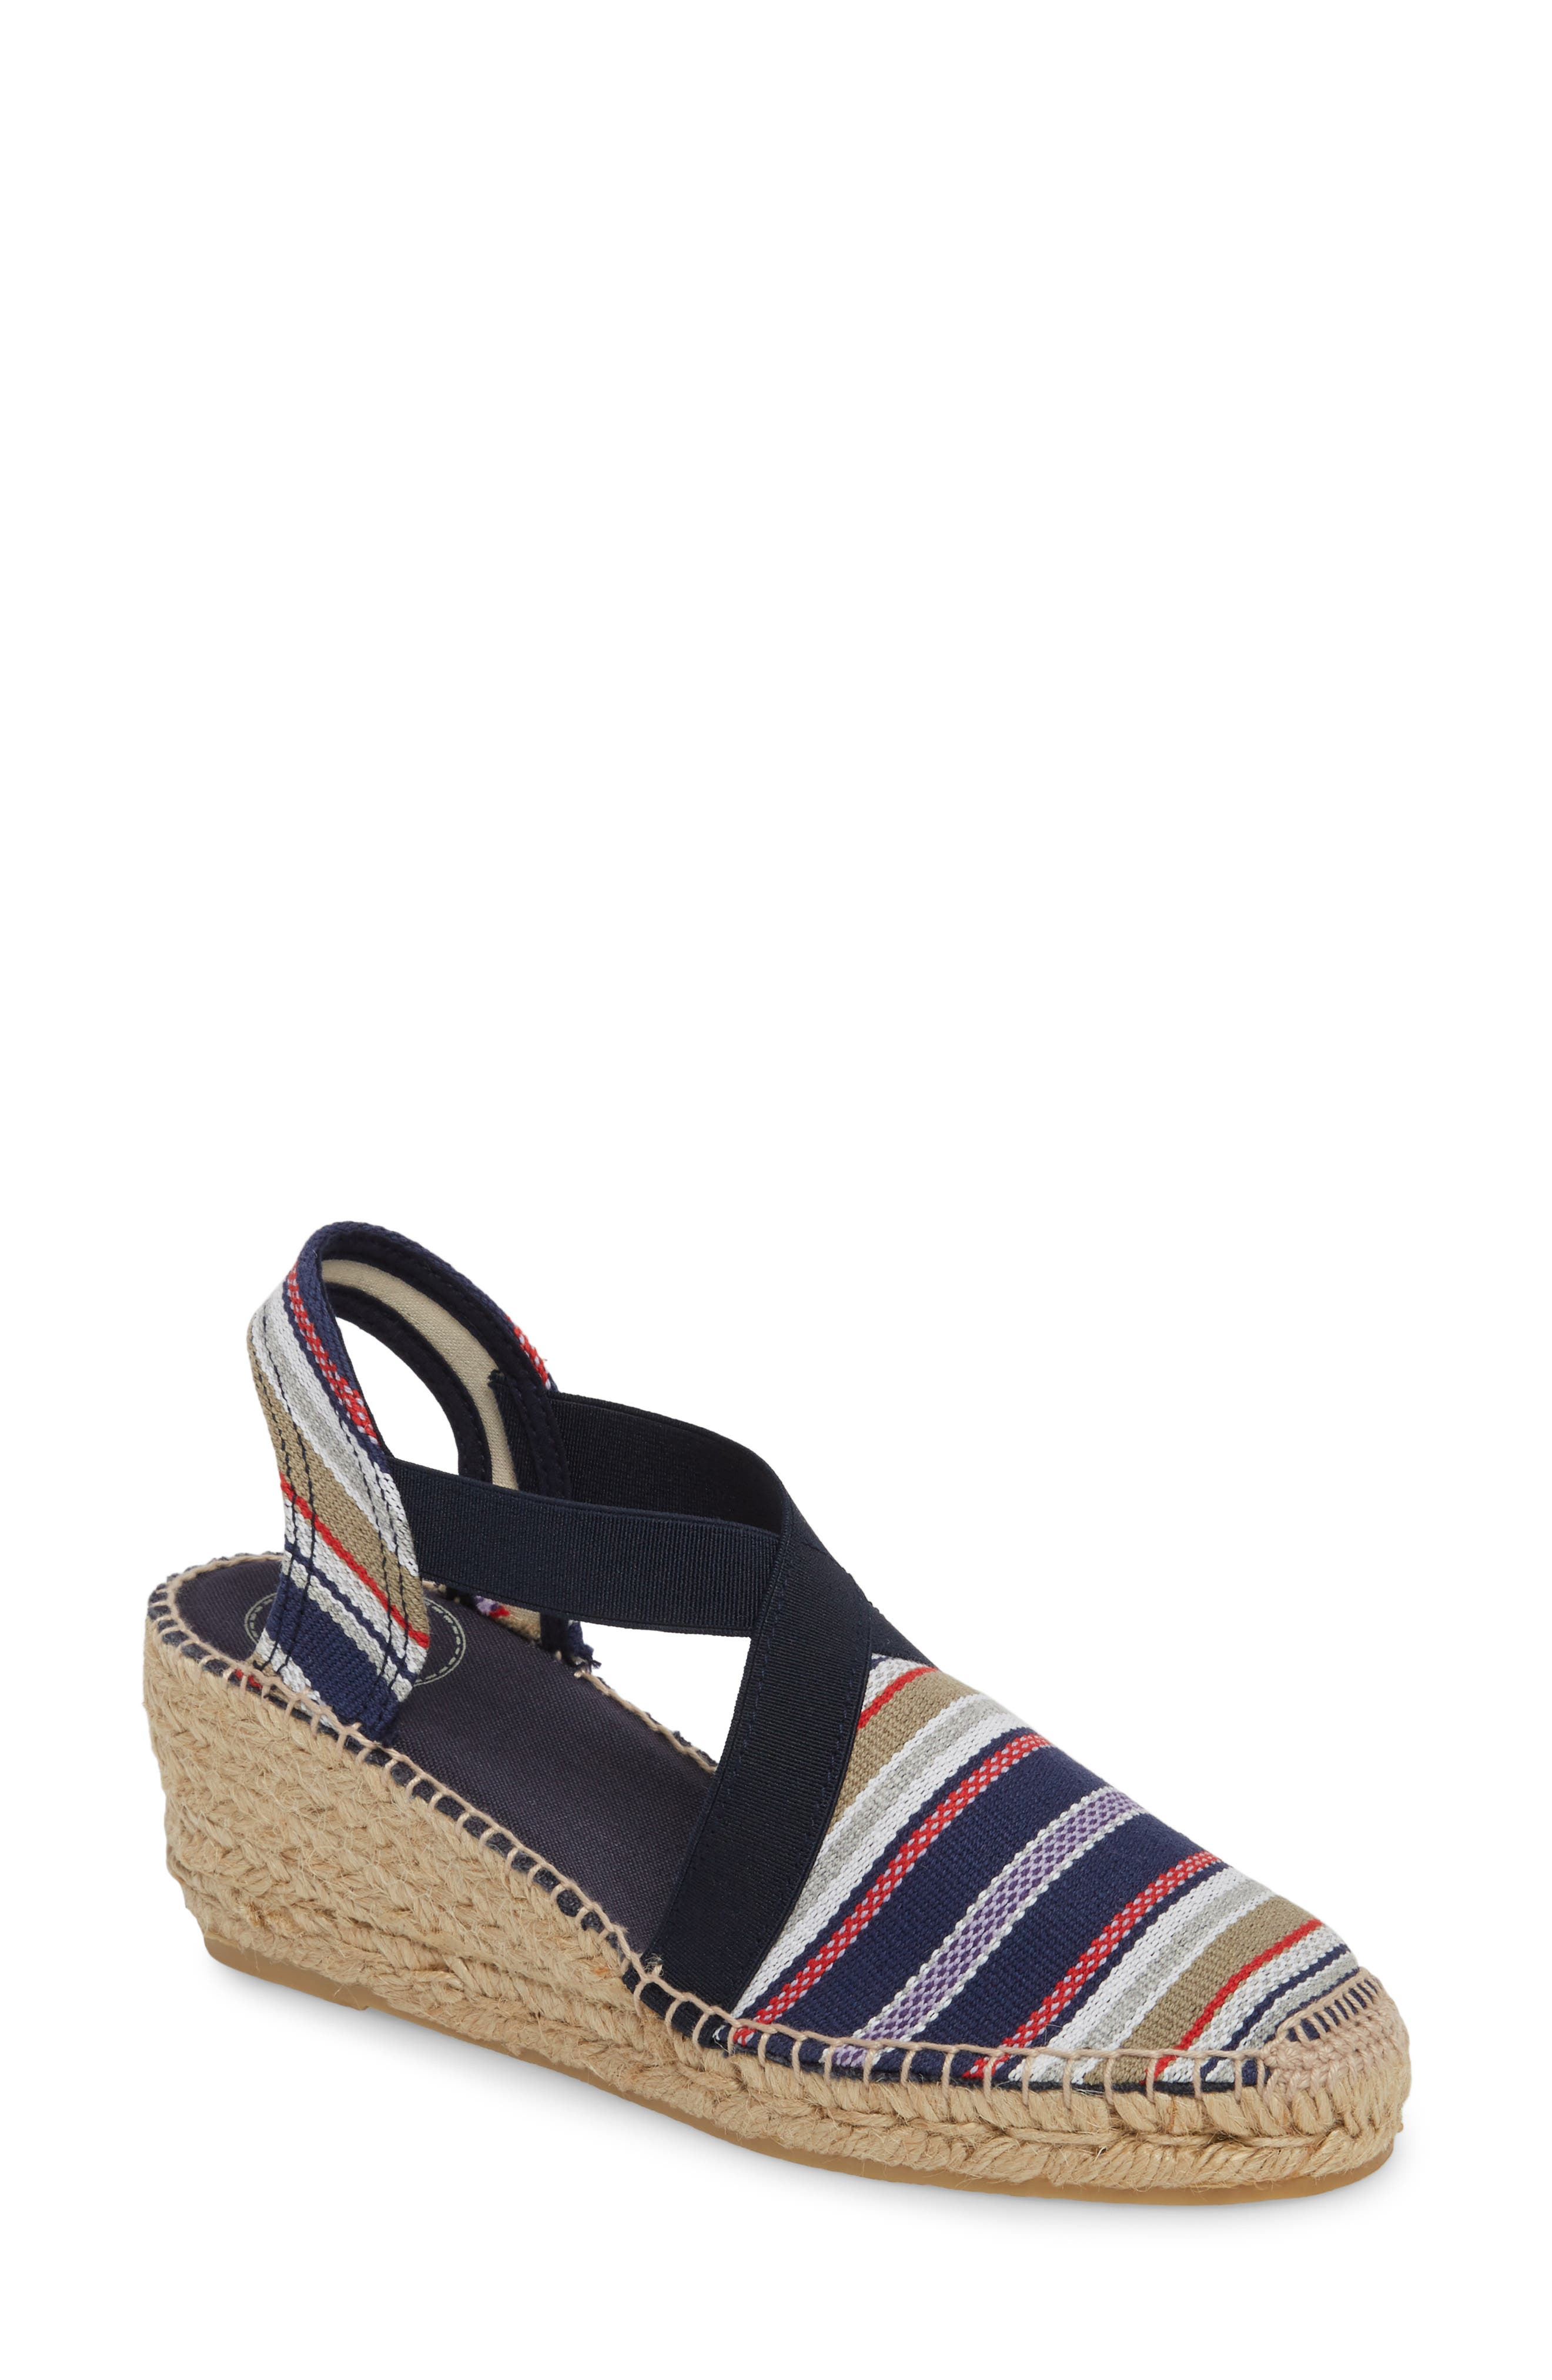 'Tarbes' Espadrille Wedge Sandal,                         Main,                         color, Navy Fabric